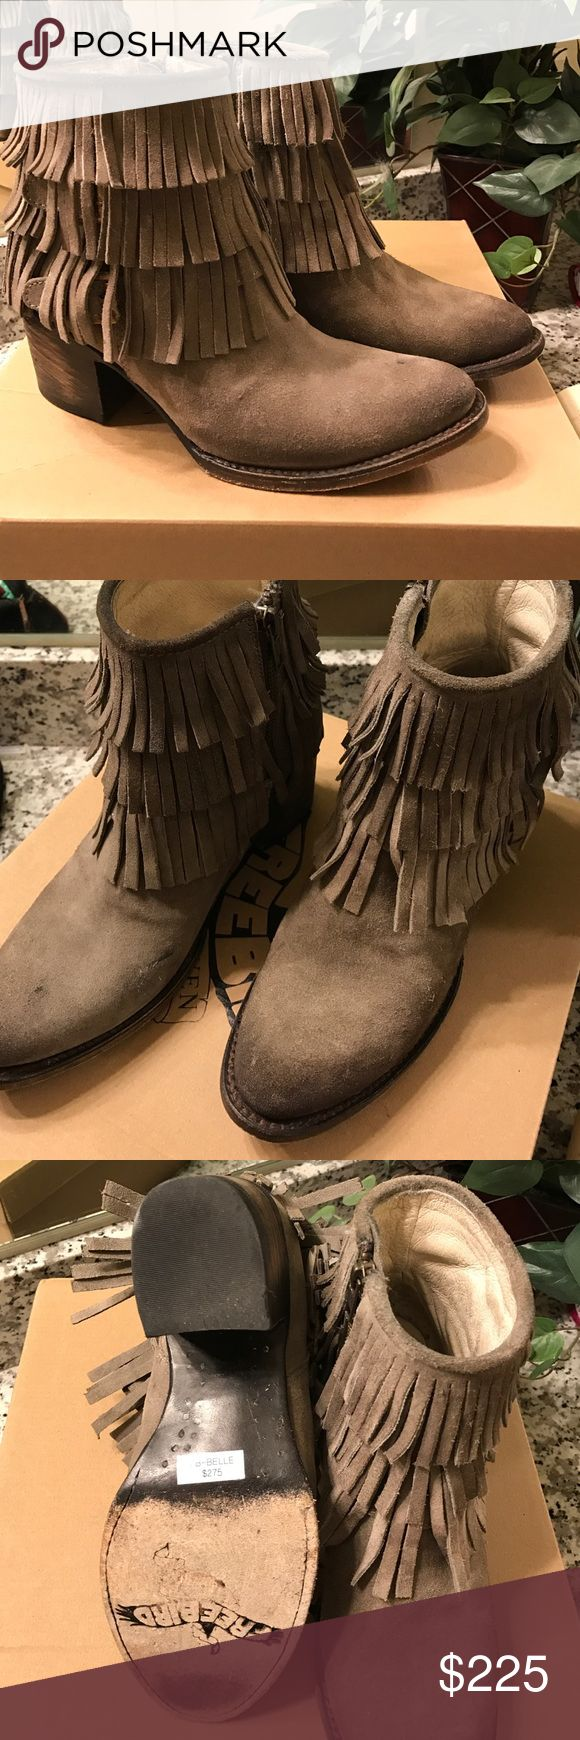 Freebird Belle Gray Bootie size 8 Freebird by Steve Madden: genuine leather, fringe, gray bootie. Brand new in original packaging. Steve Madden Shoes Ankle Boots & Booties